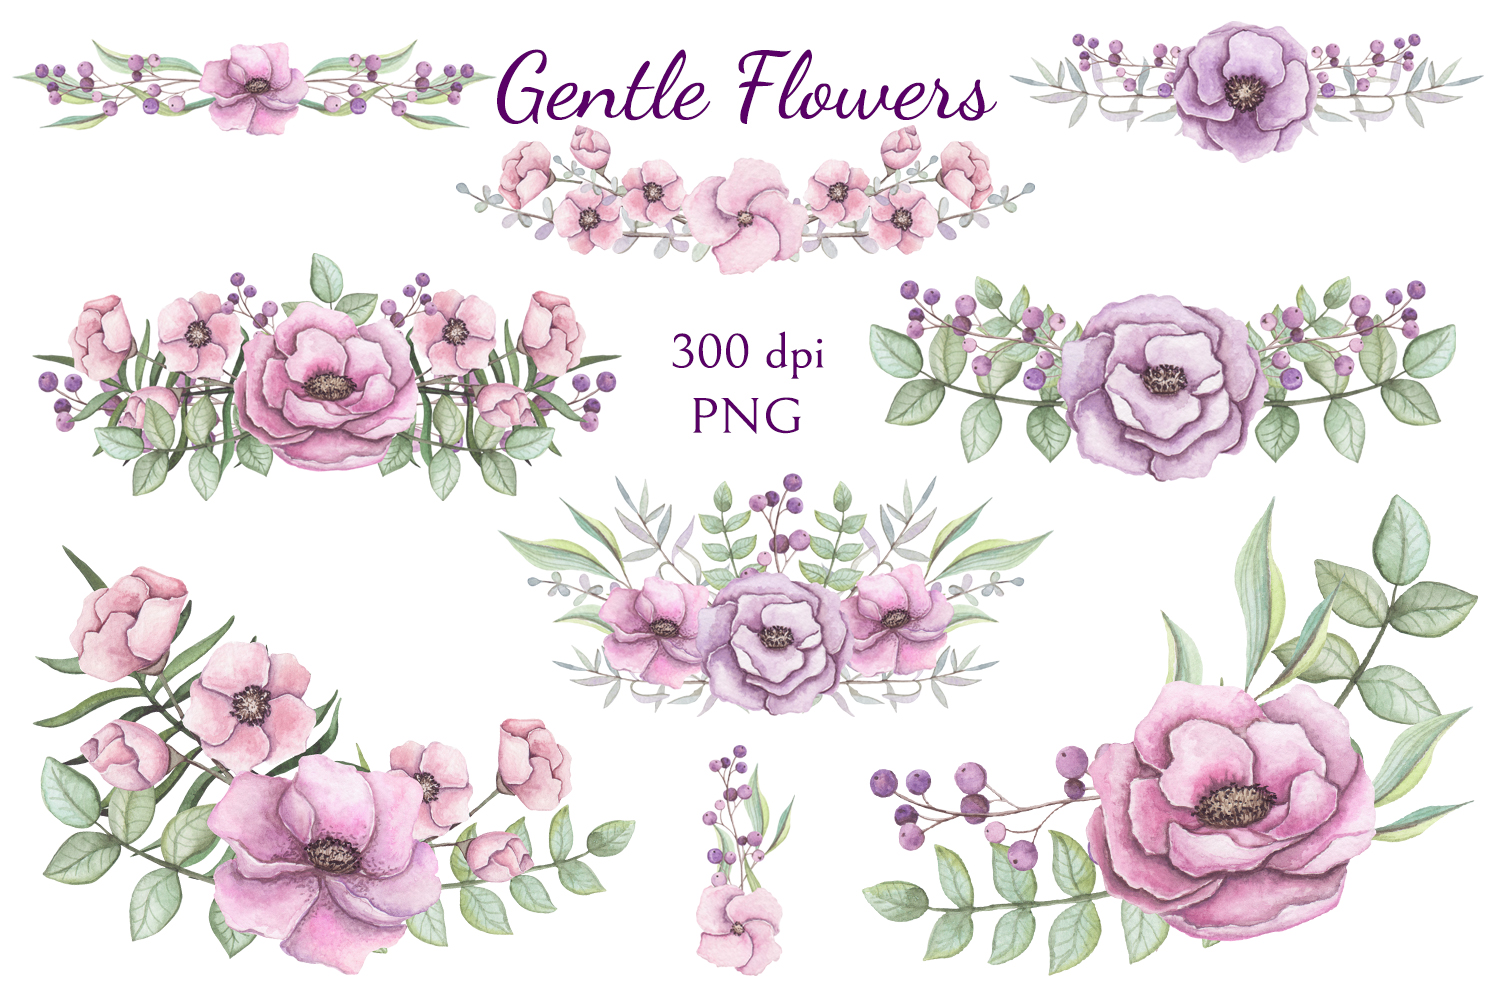 Gentle Flowers example image 5